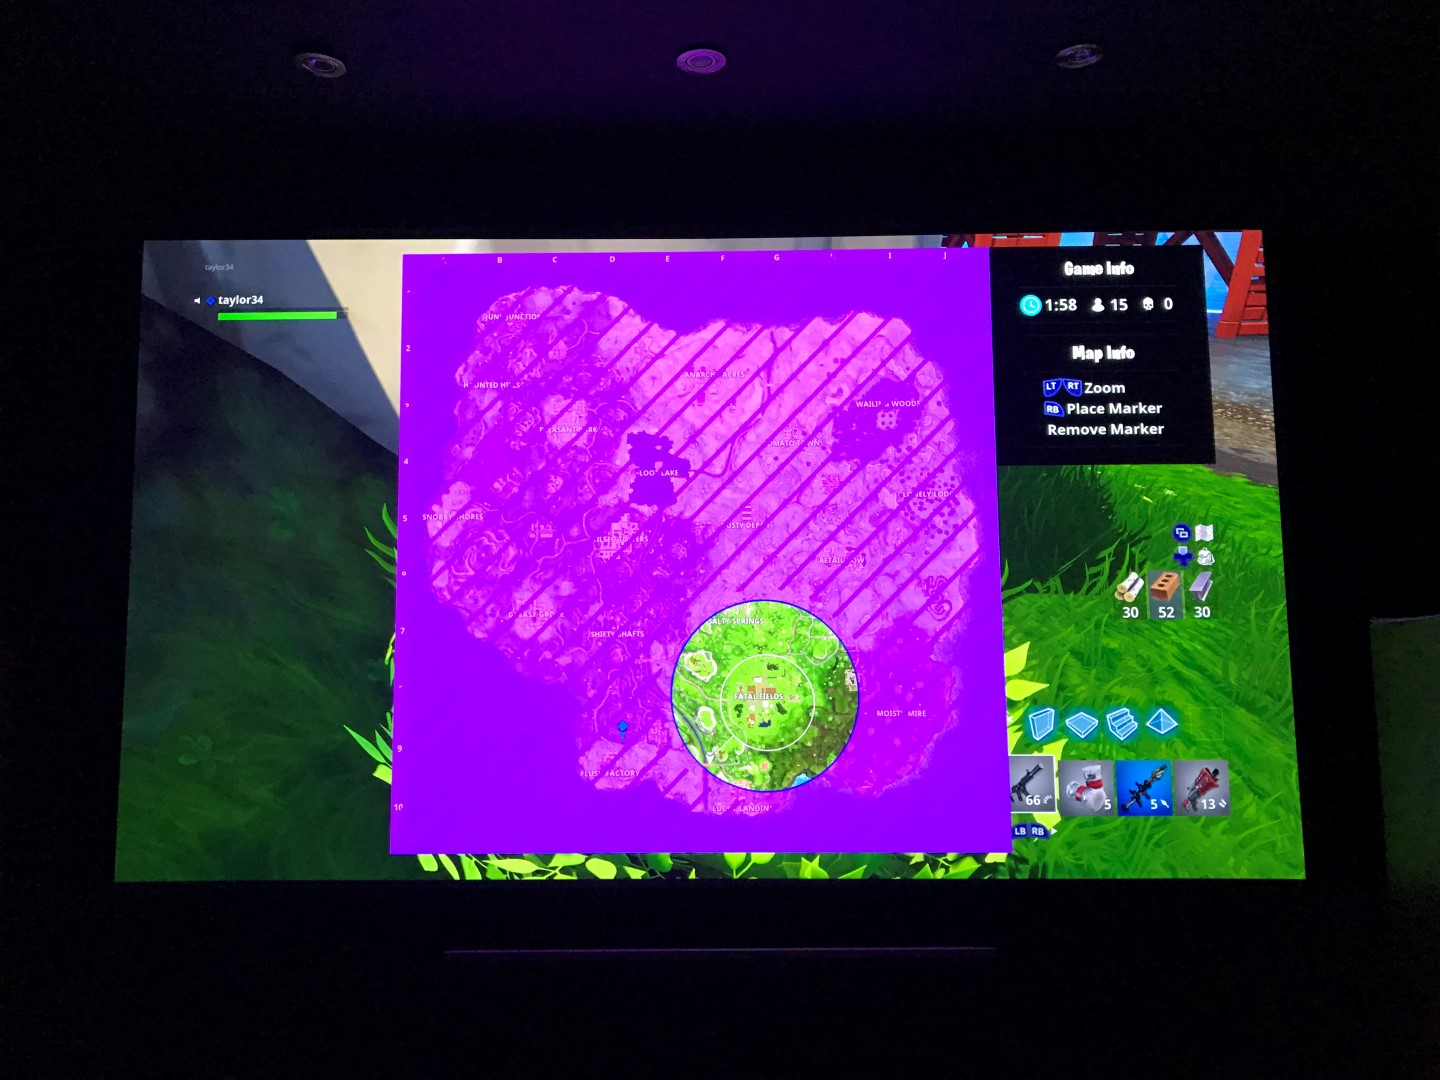 Fortnite almost at the end